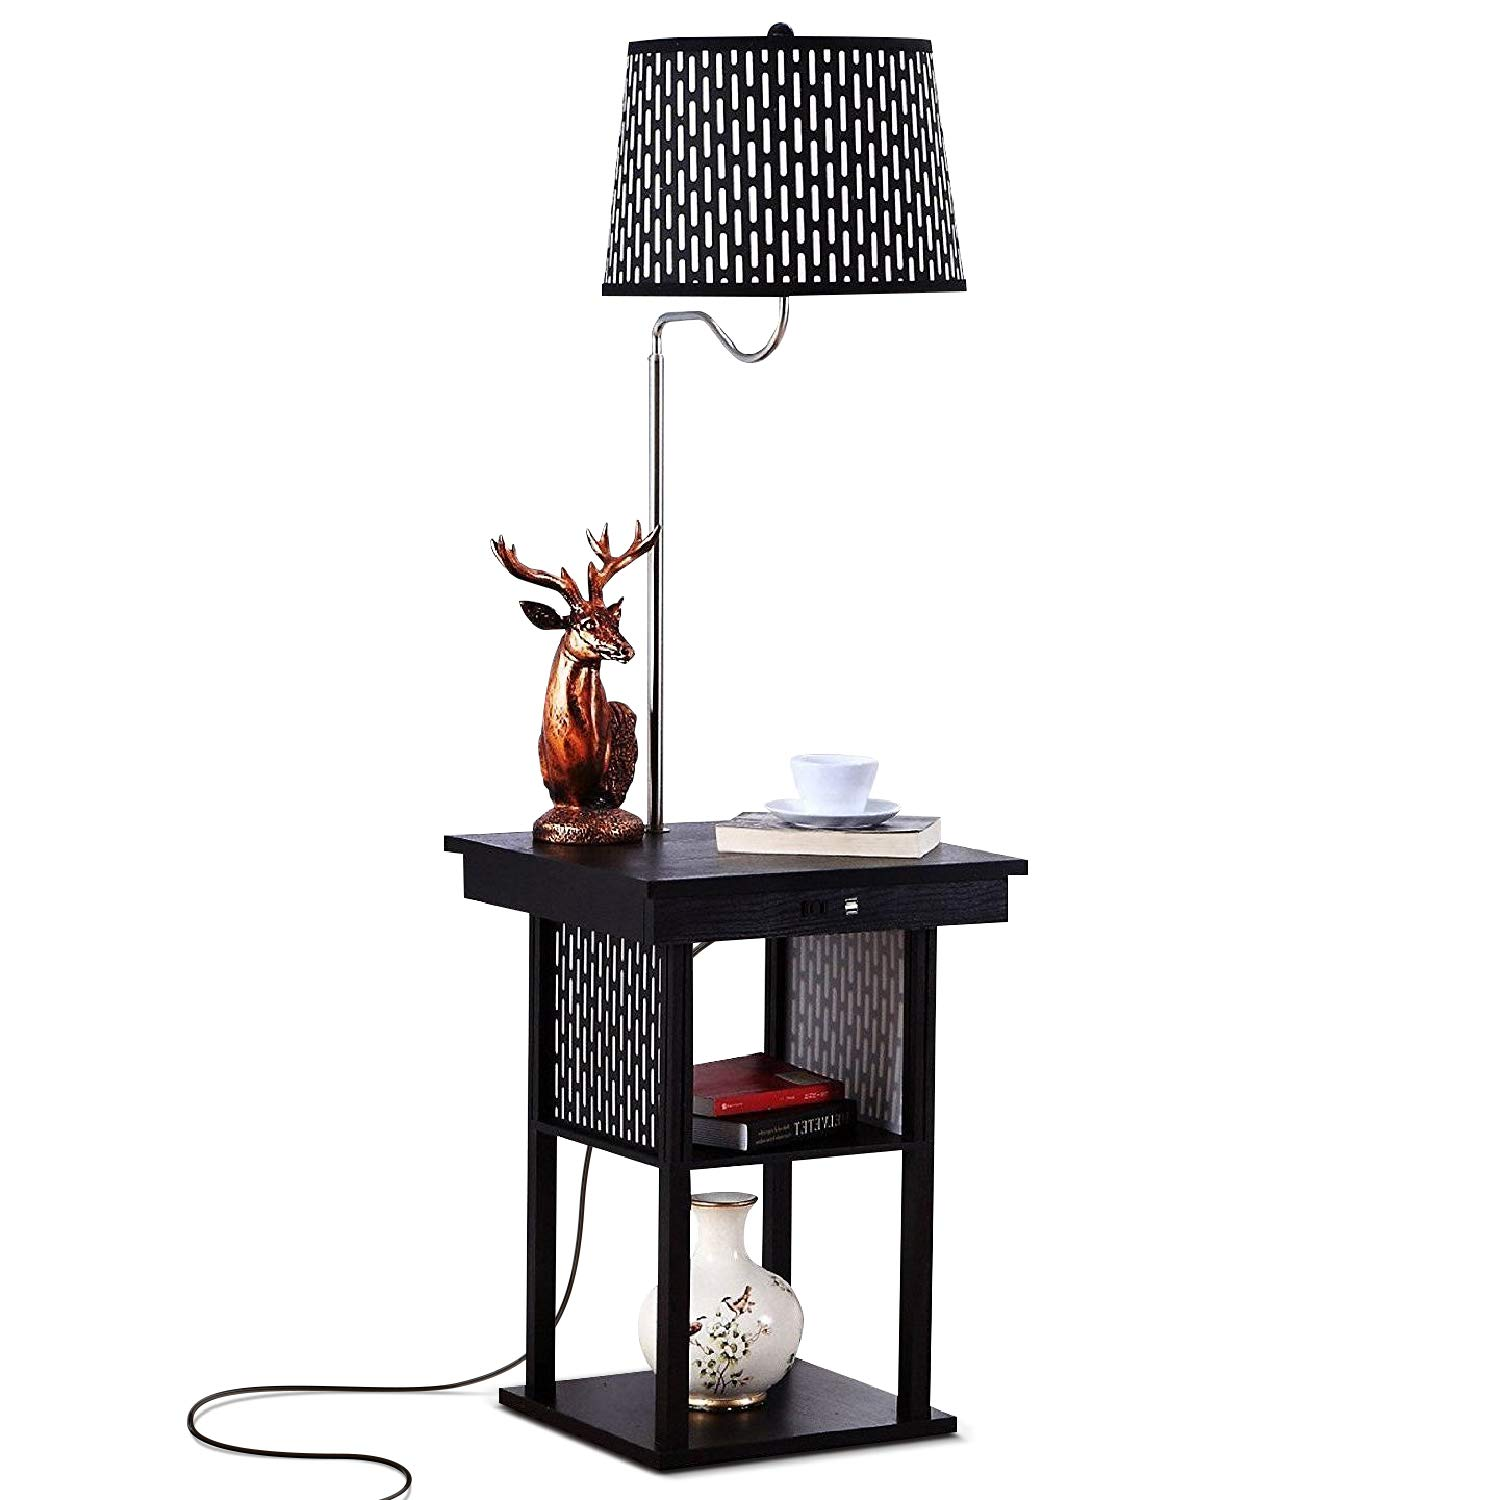 Brightech Madison - Mid Century Modern Nightstand, Shelves & USB Port Combination - Bedside Table with LED Floor Lamp Attached - End Table for Living Room Sofas - Black